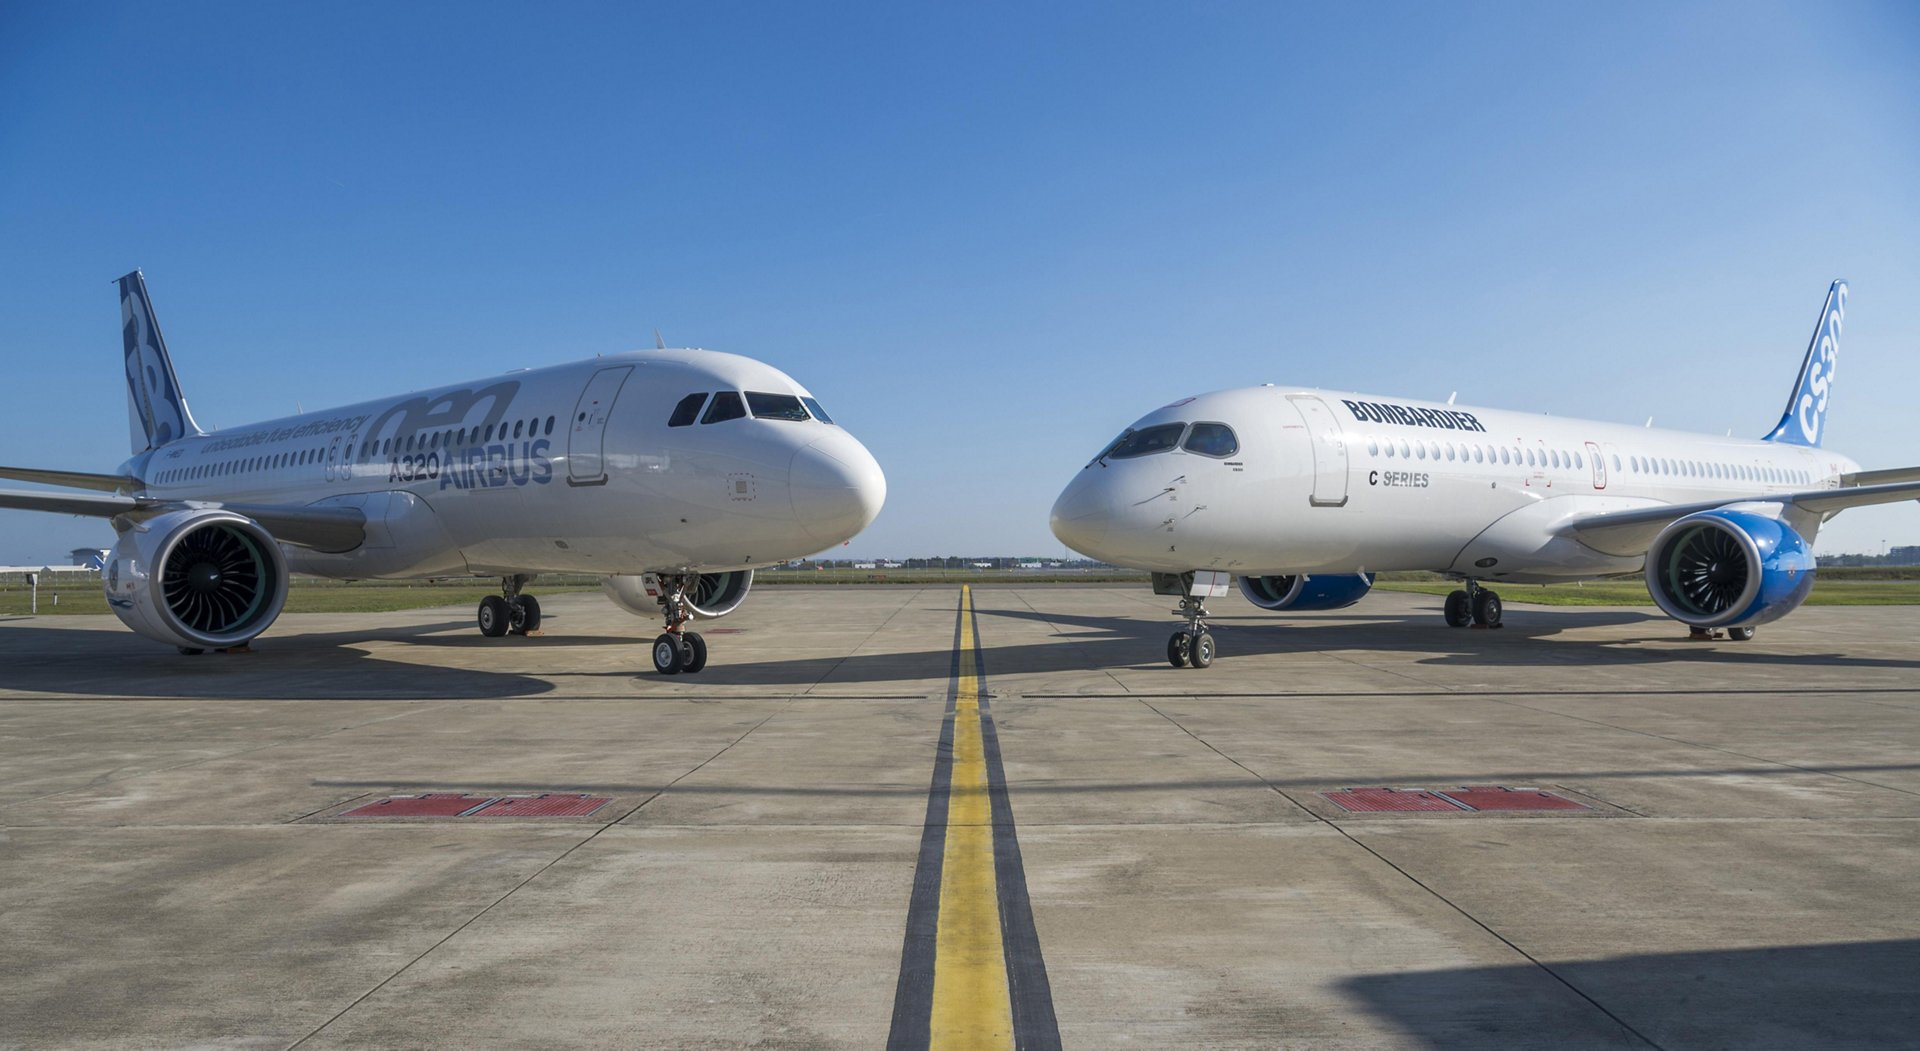 The C Series Aircraft Limited Partnership, in which Airbus acquires a majority stake, brings together two complementary product lines in the 100-150 seat market segment that is projected to represent 6,000 new aircraft over the next 20 years